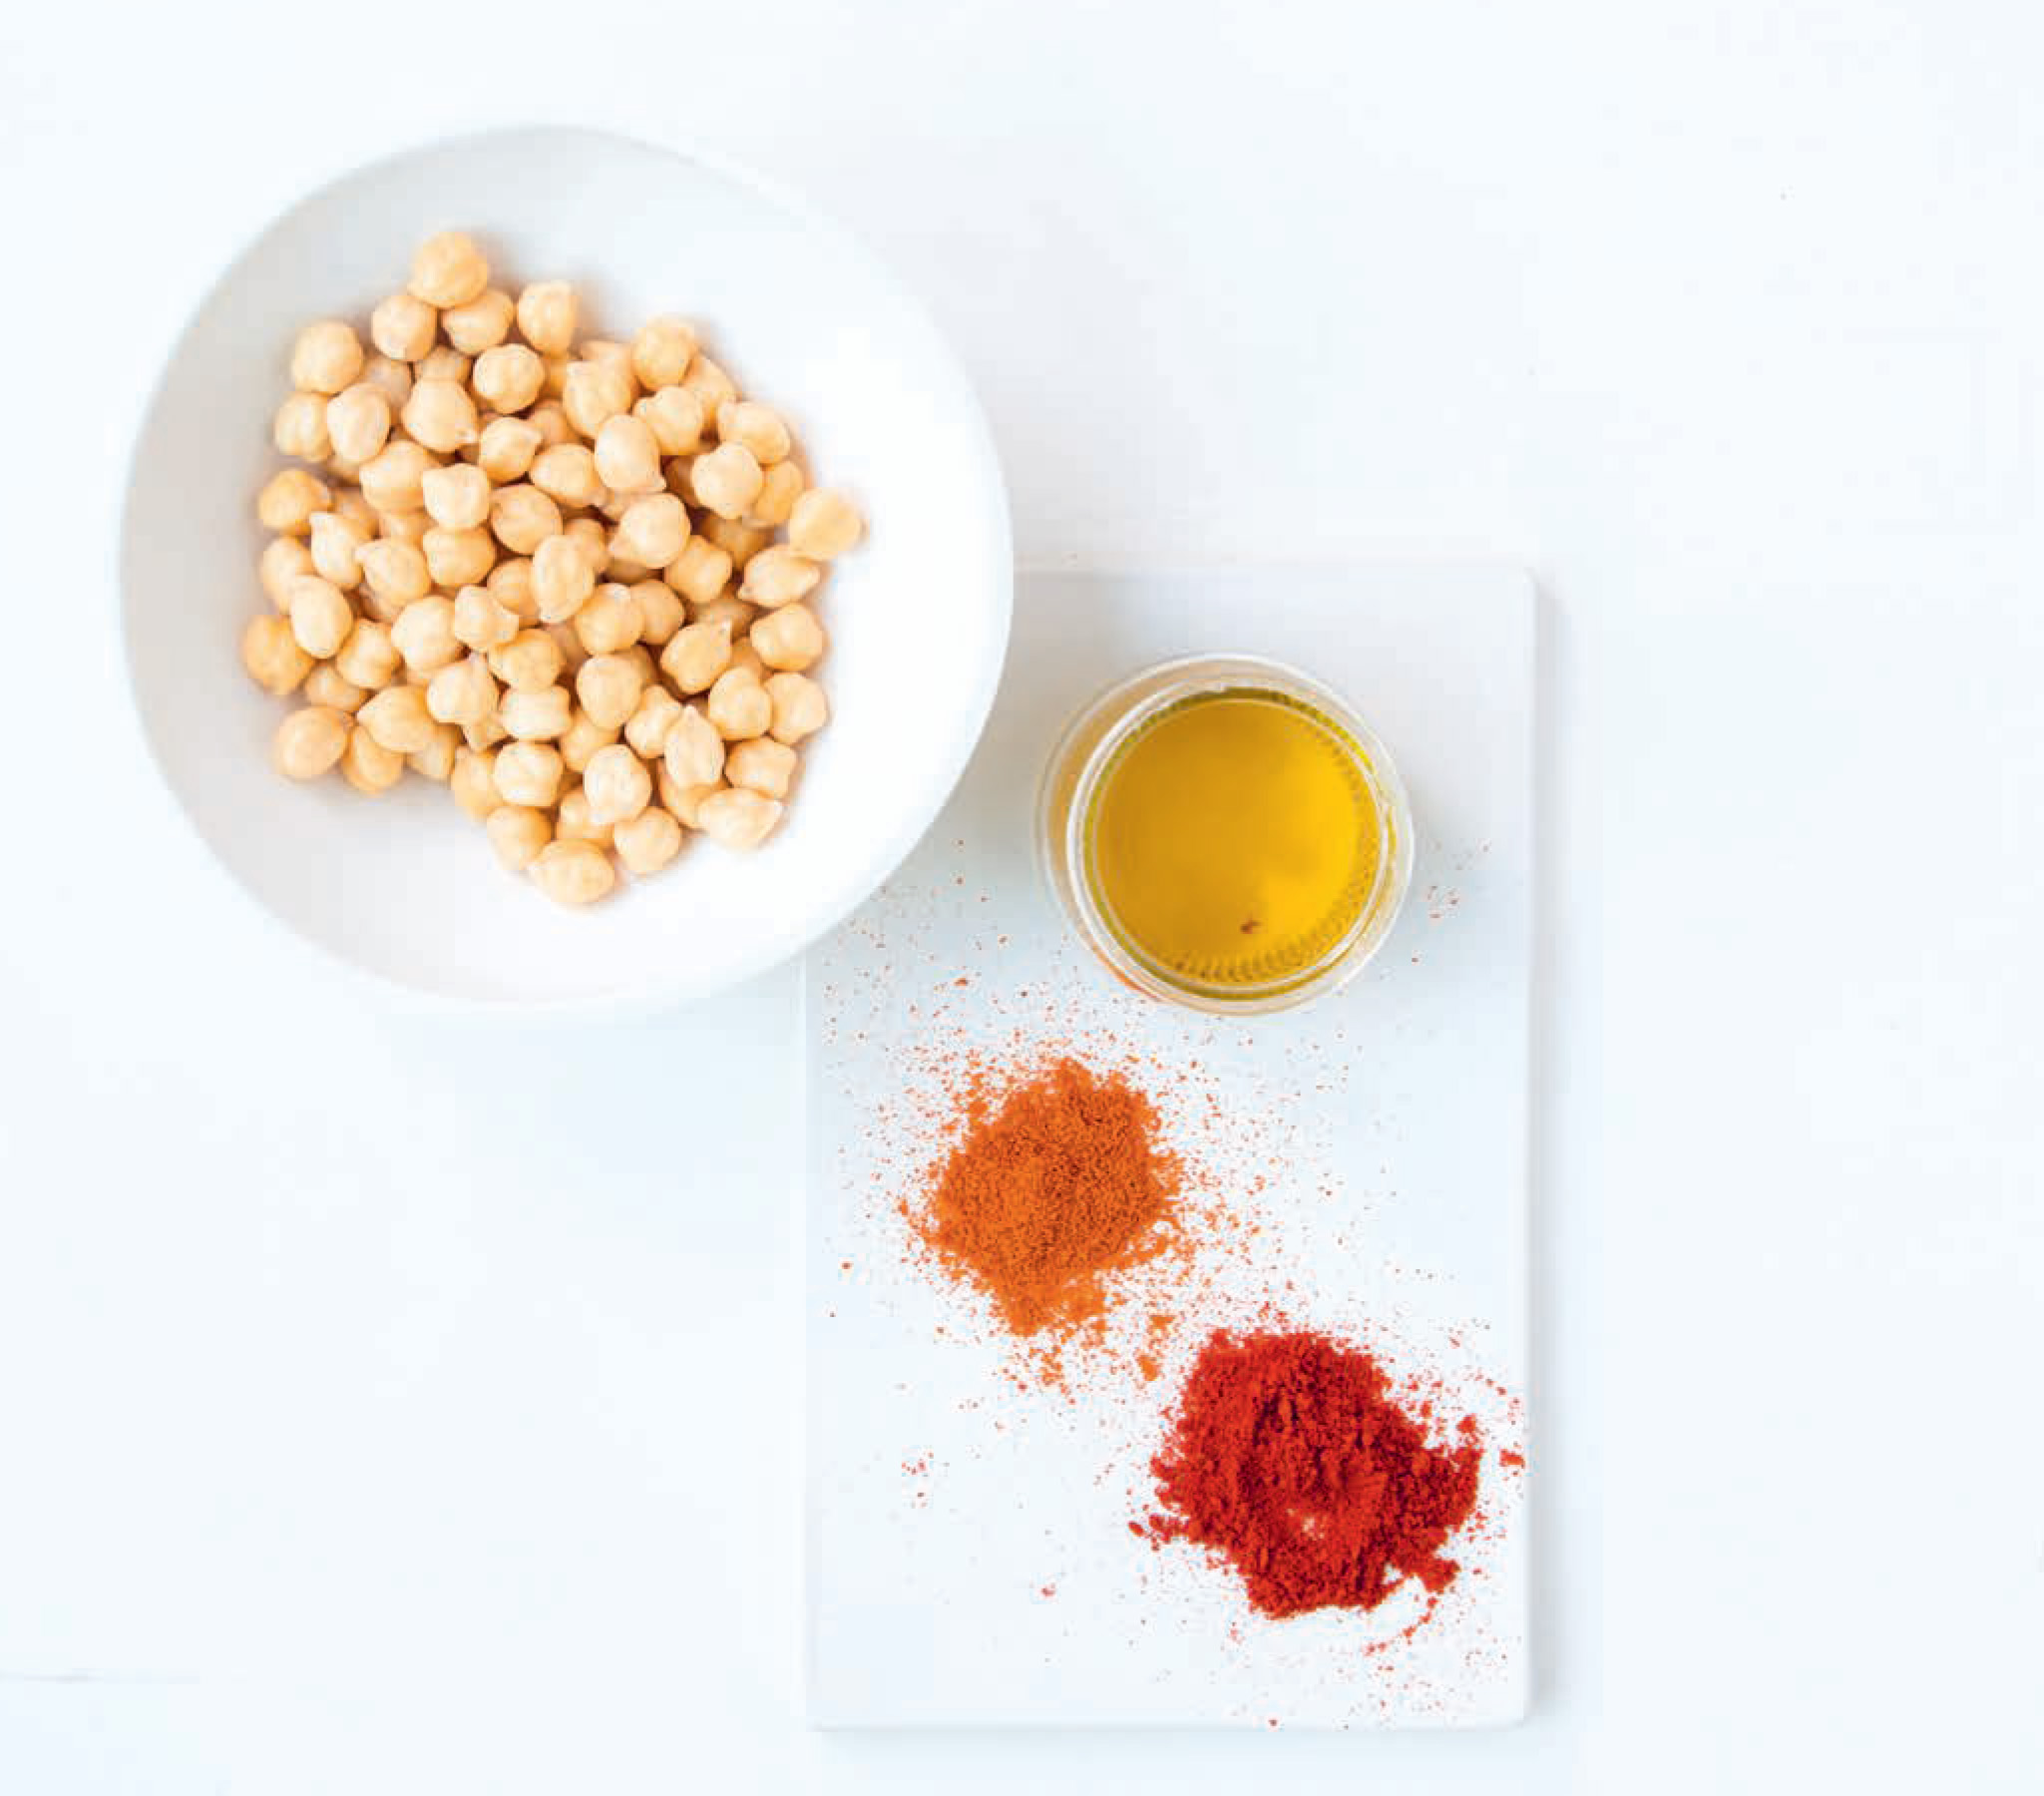 Spicy chickpeas